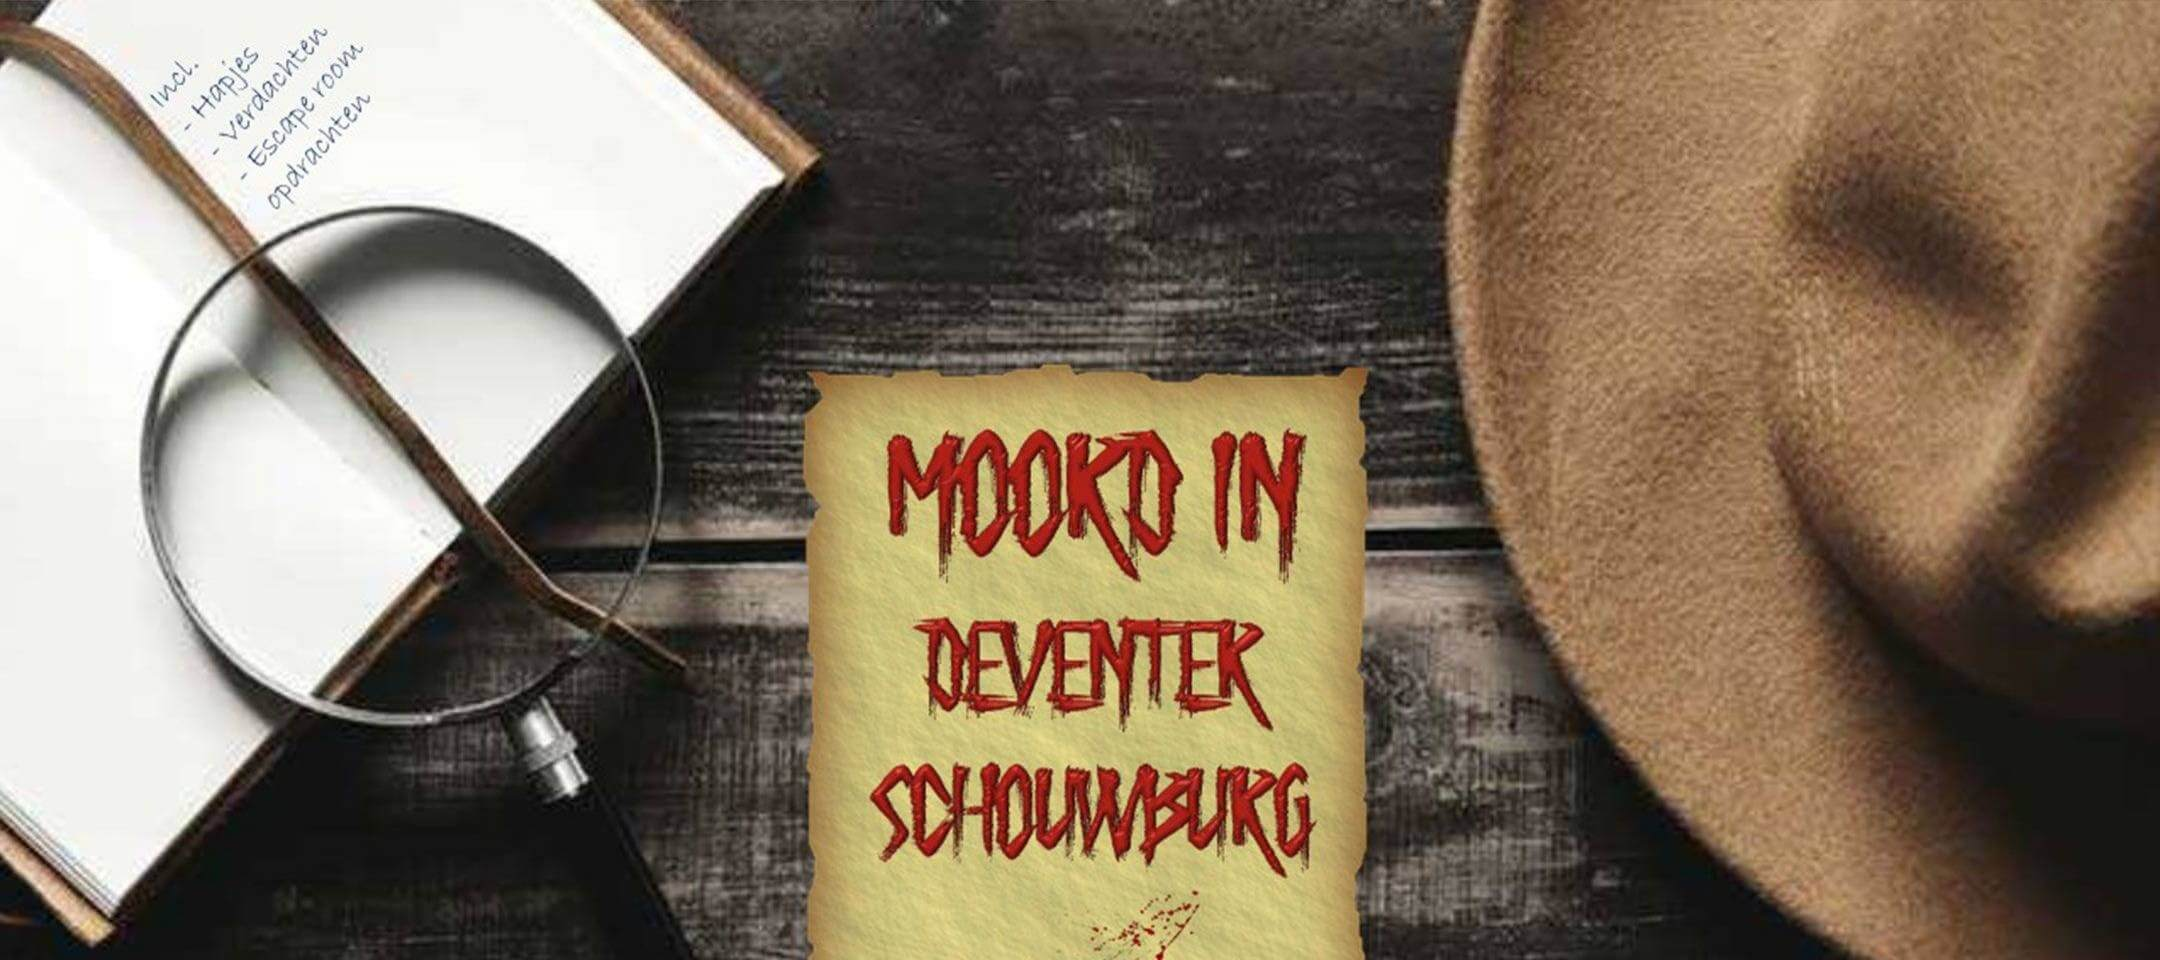 Moorddiner in de Deventer Schouwburg